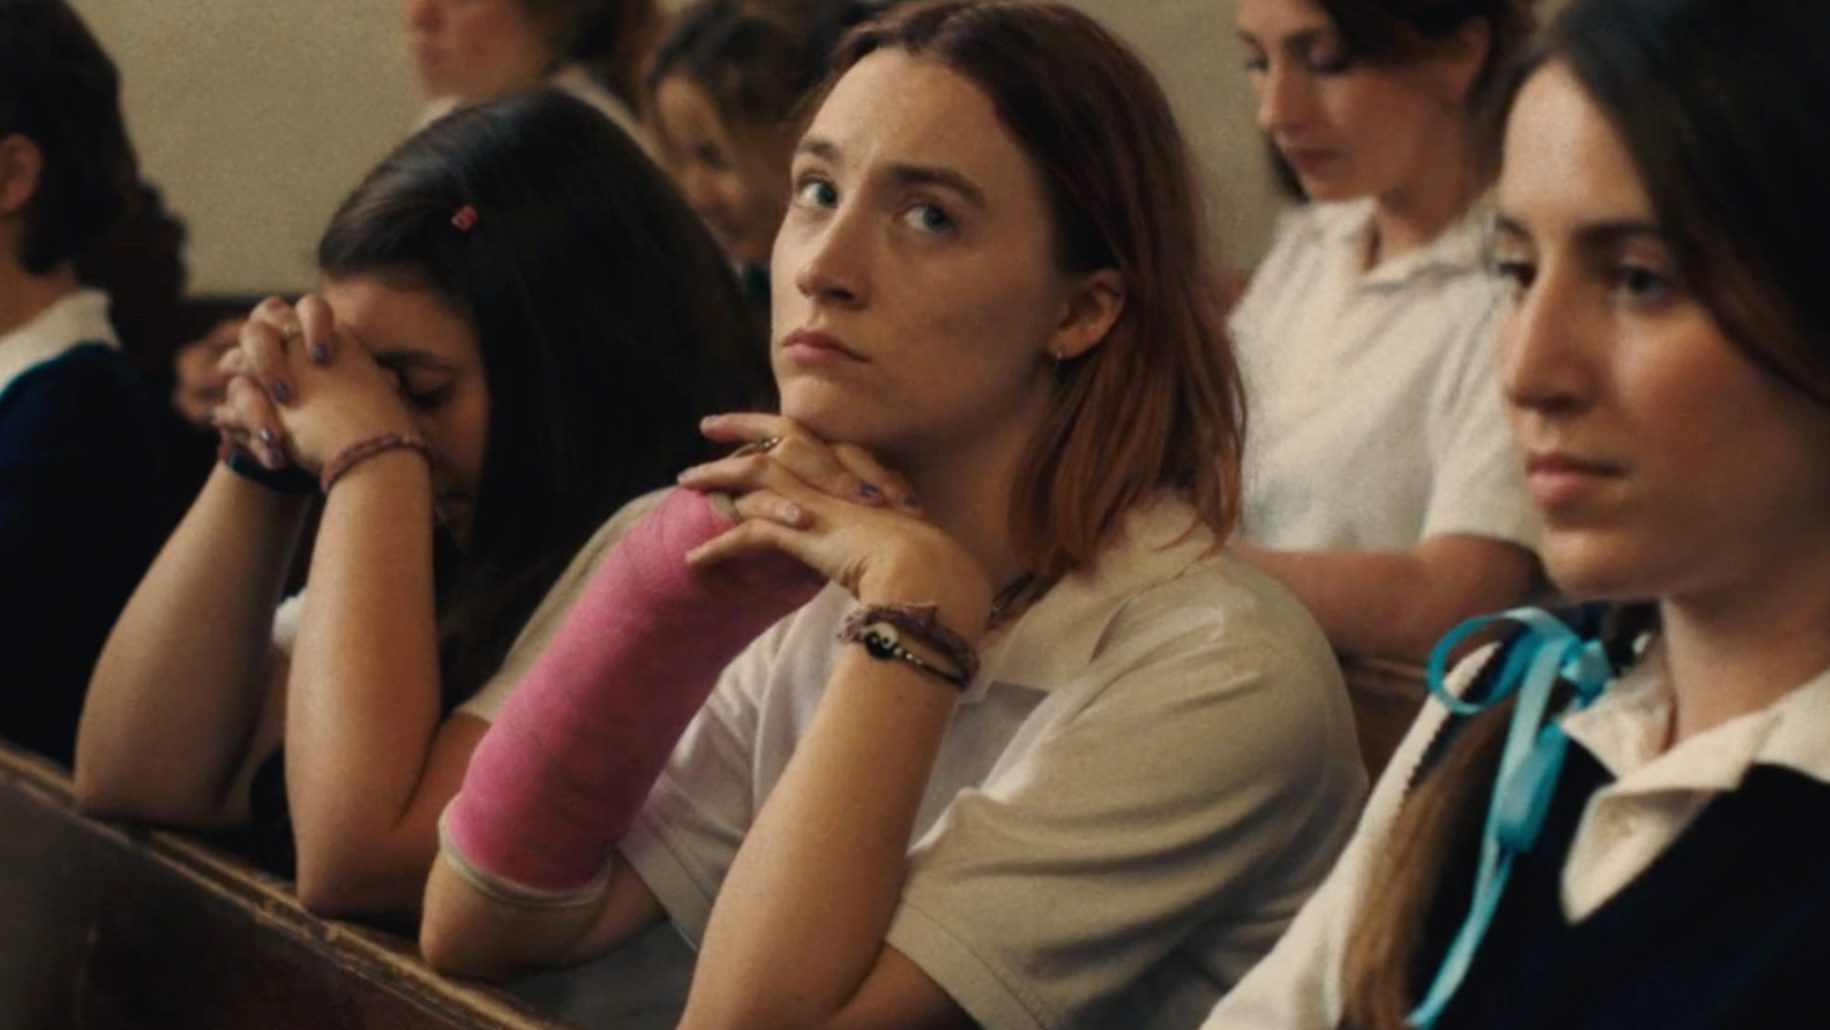 A critic gamed rotten tomatoes to ruin lady birds perfect score lady bird lost its perfect rotten tomatoes score because one critic gamed the system ccuart Gallery